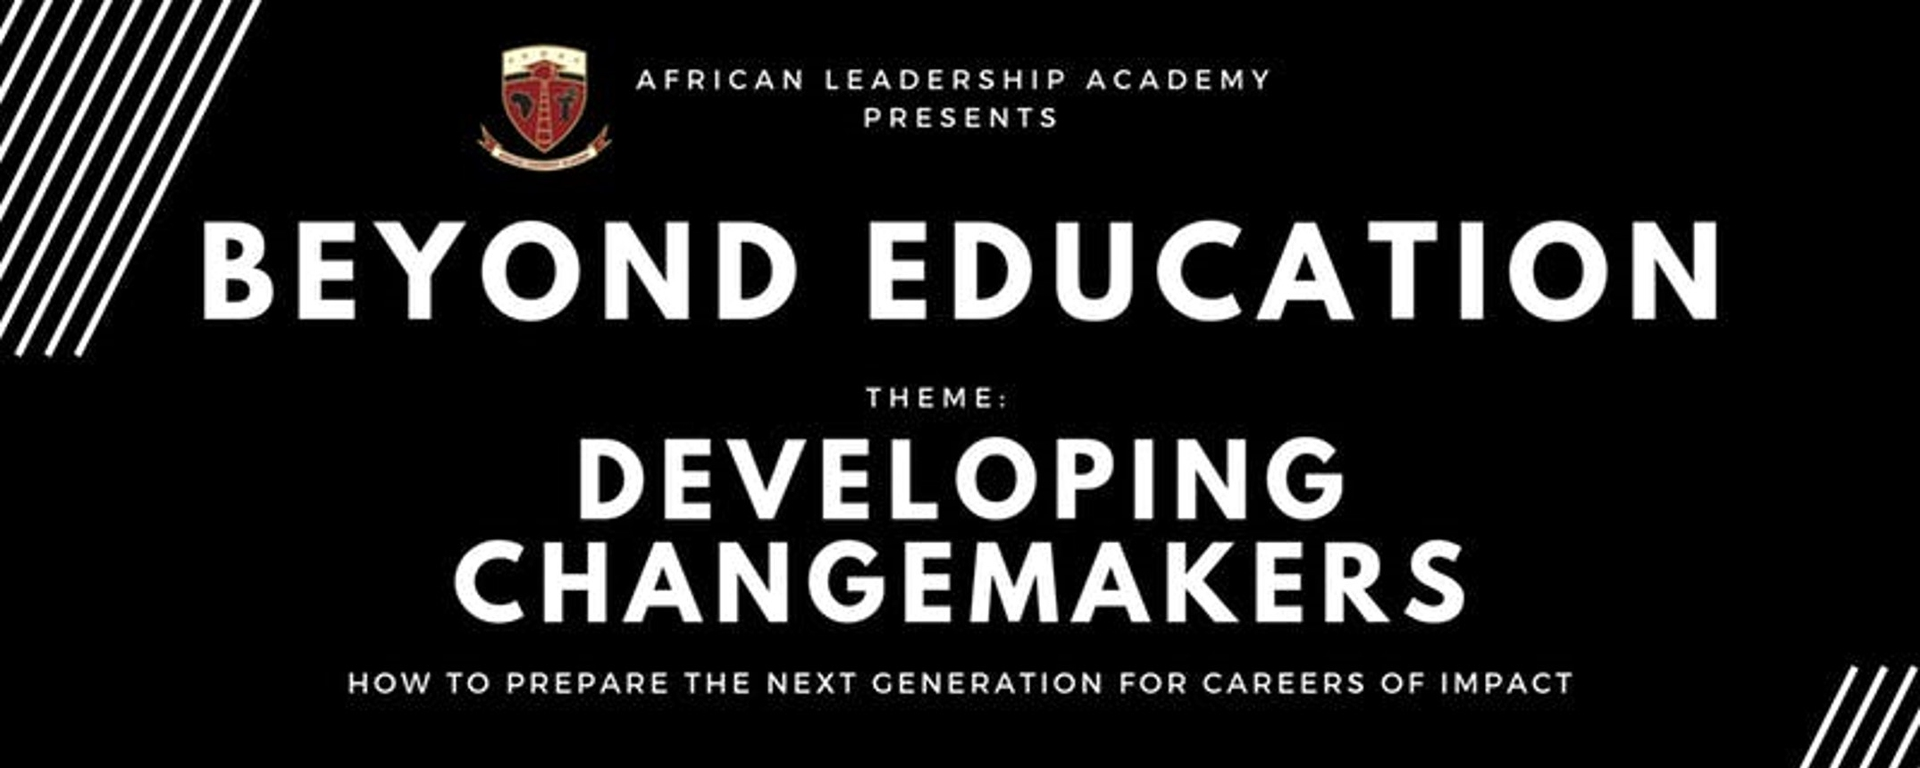 African Leadership Academy - Beyond Education 2019 Conference (Nairobi) - Developing Changemakers Movemeback African event cover image